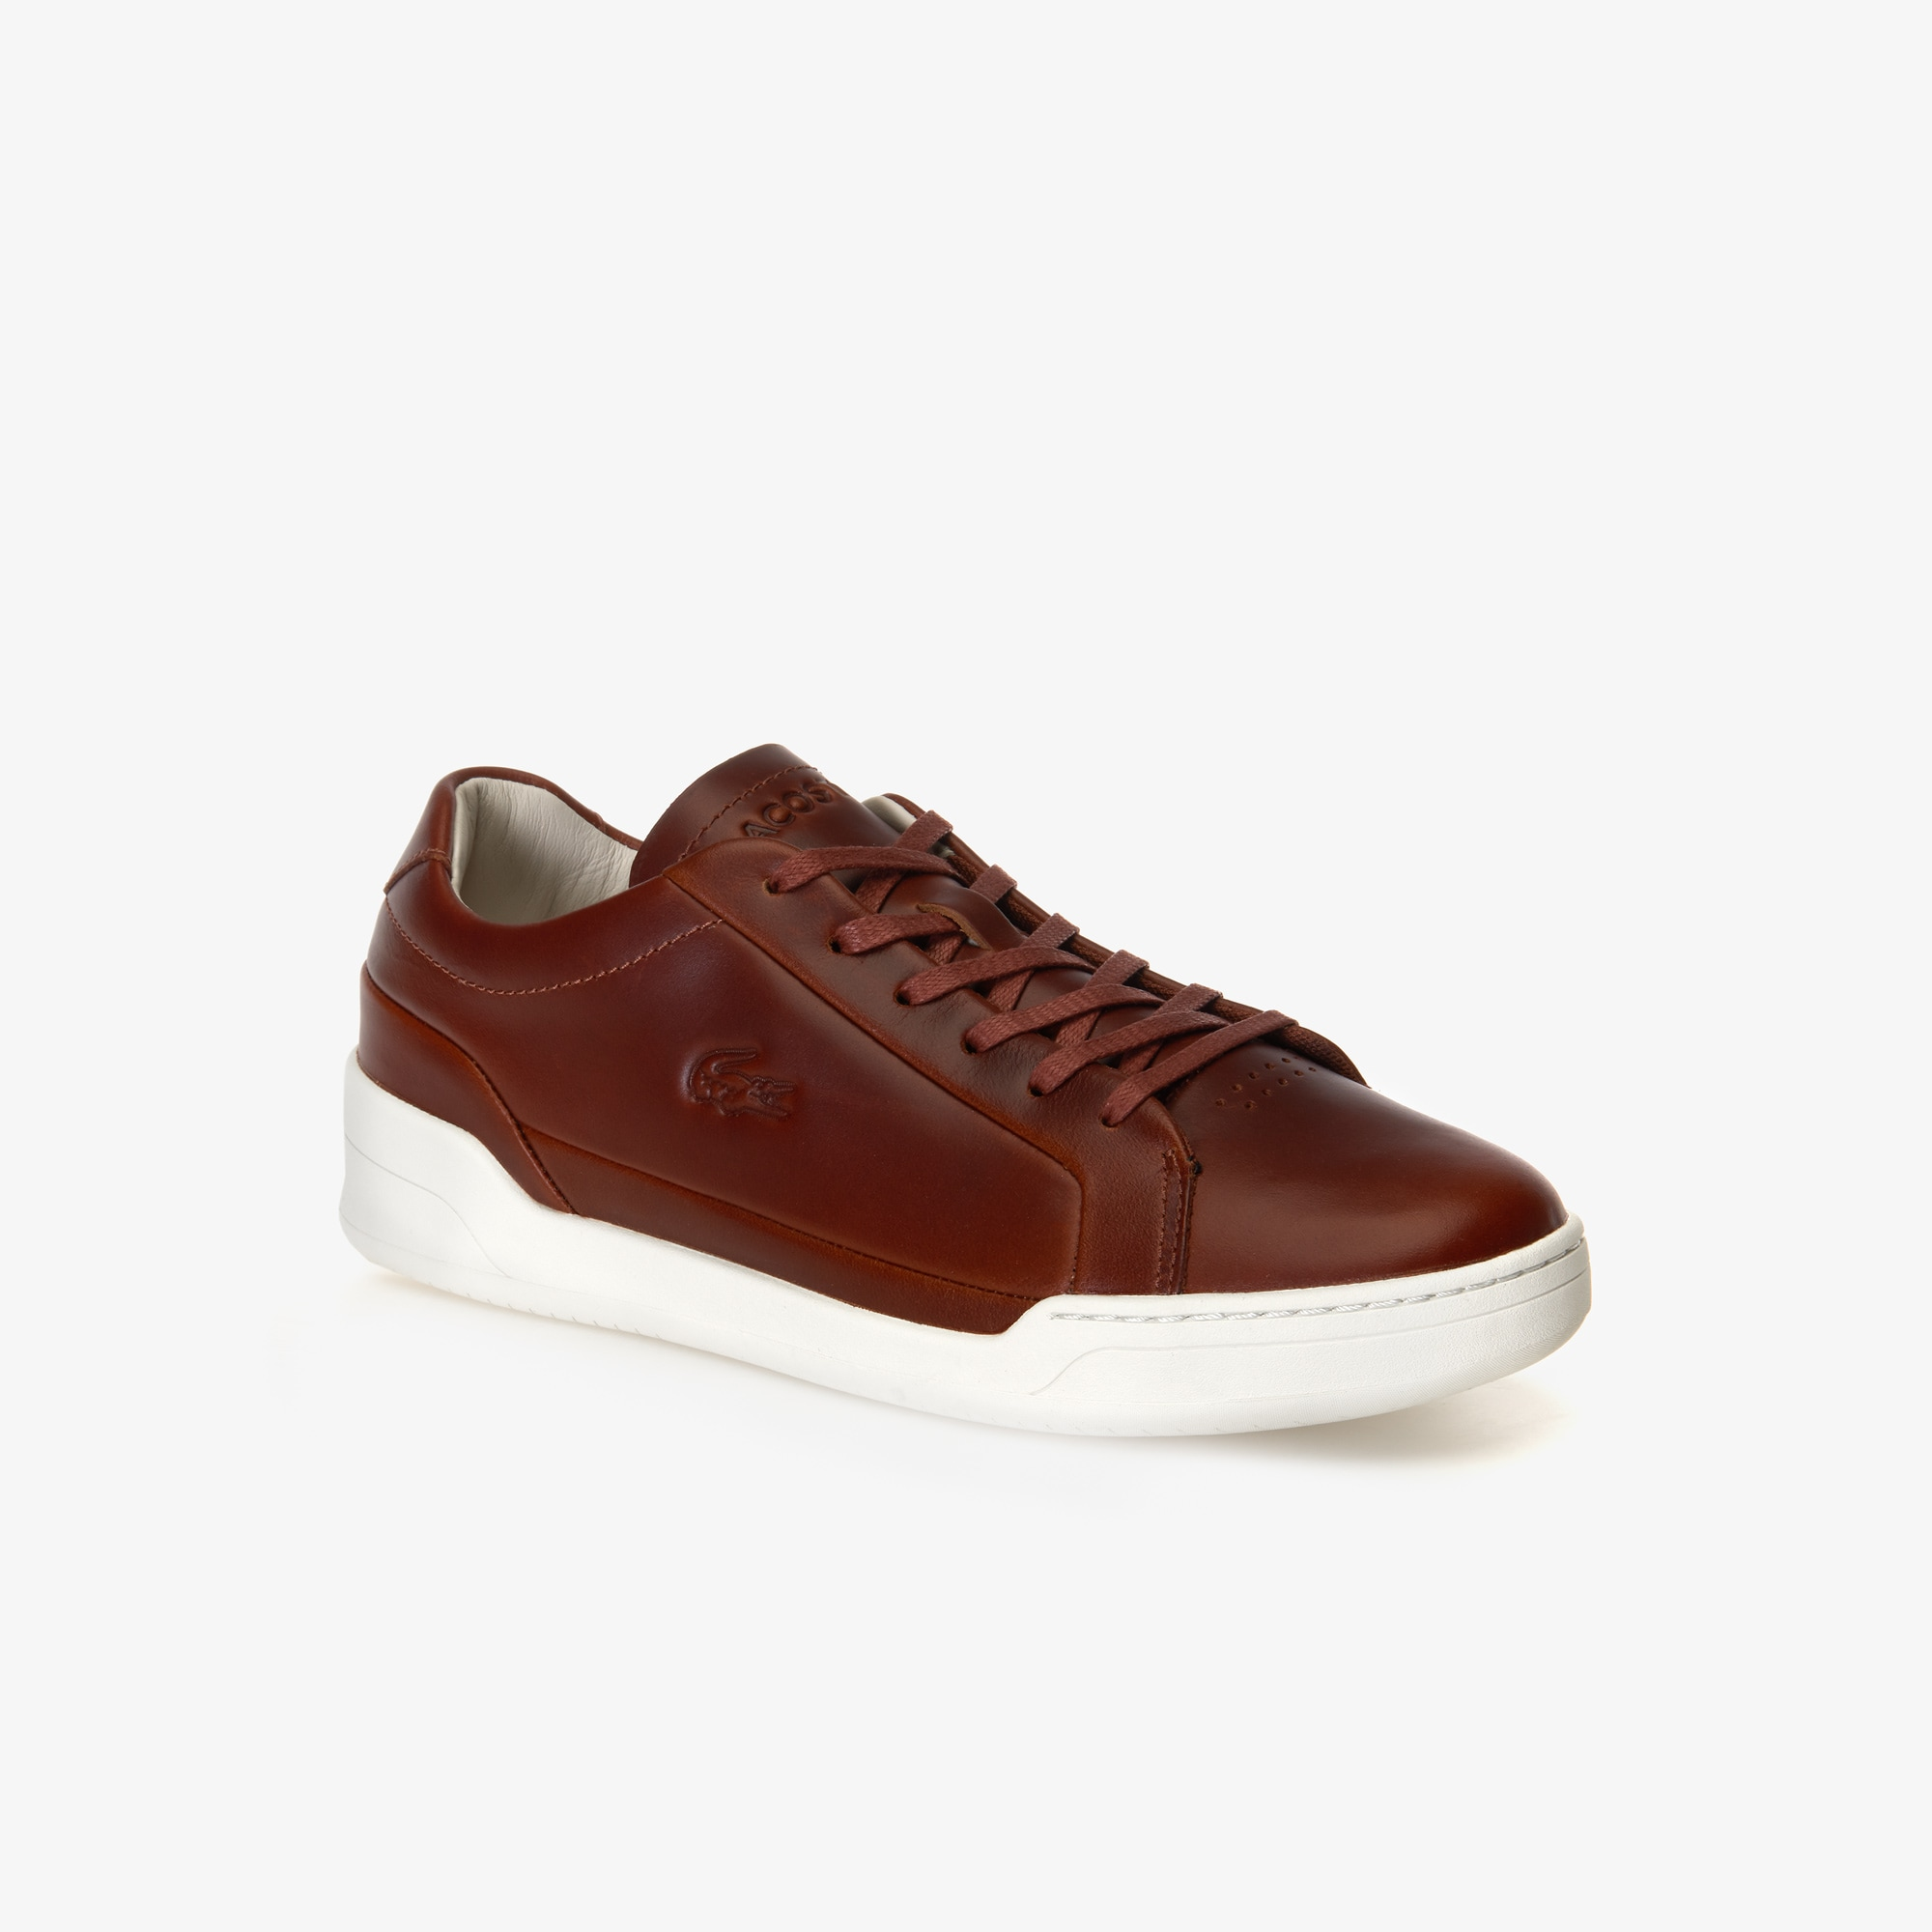 21d078bf6 Men s Challenge Leather Trainers